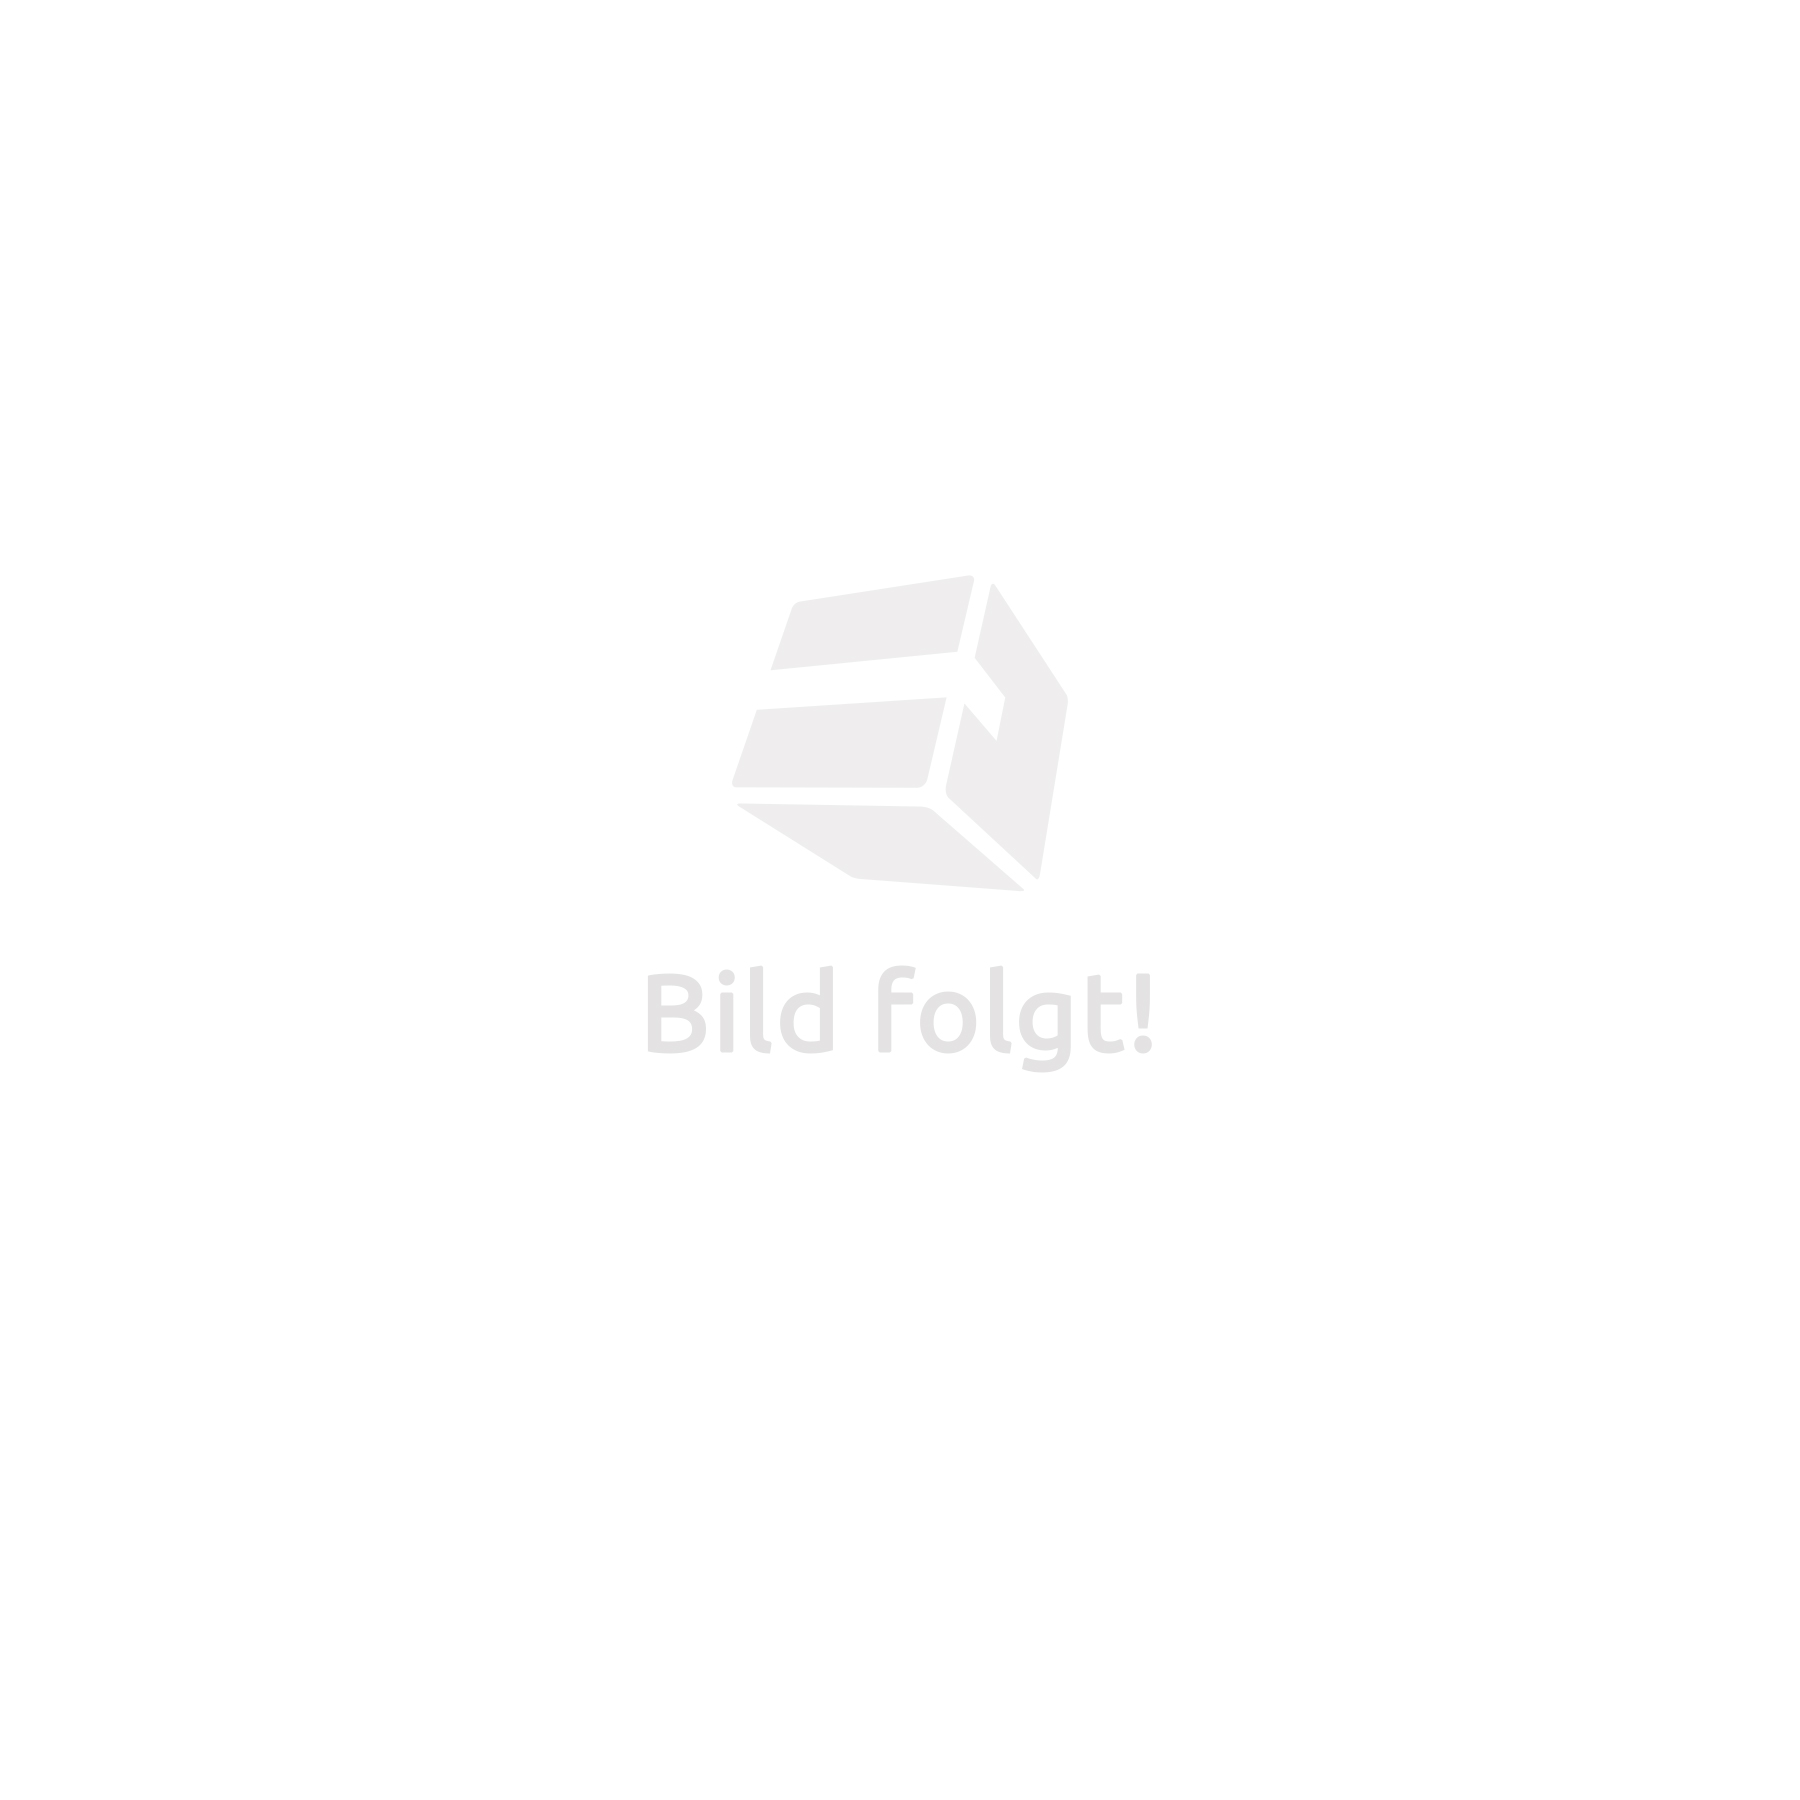 fauteuil pliable en aluminium poly rotin chaise multi positions terrasse jardin ebay. Black Bedroom Furniture Sets. Home Design Ideas